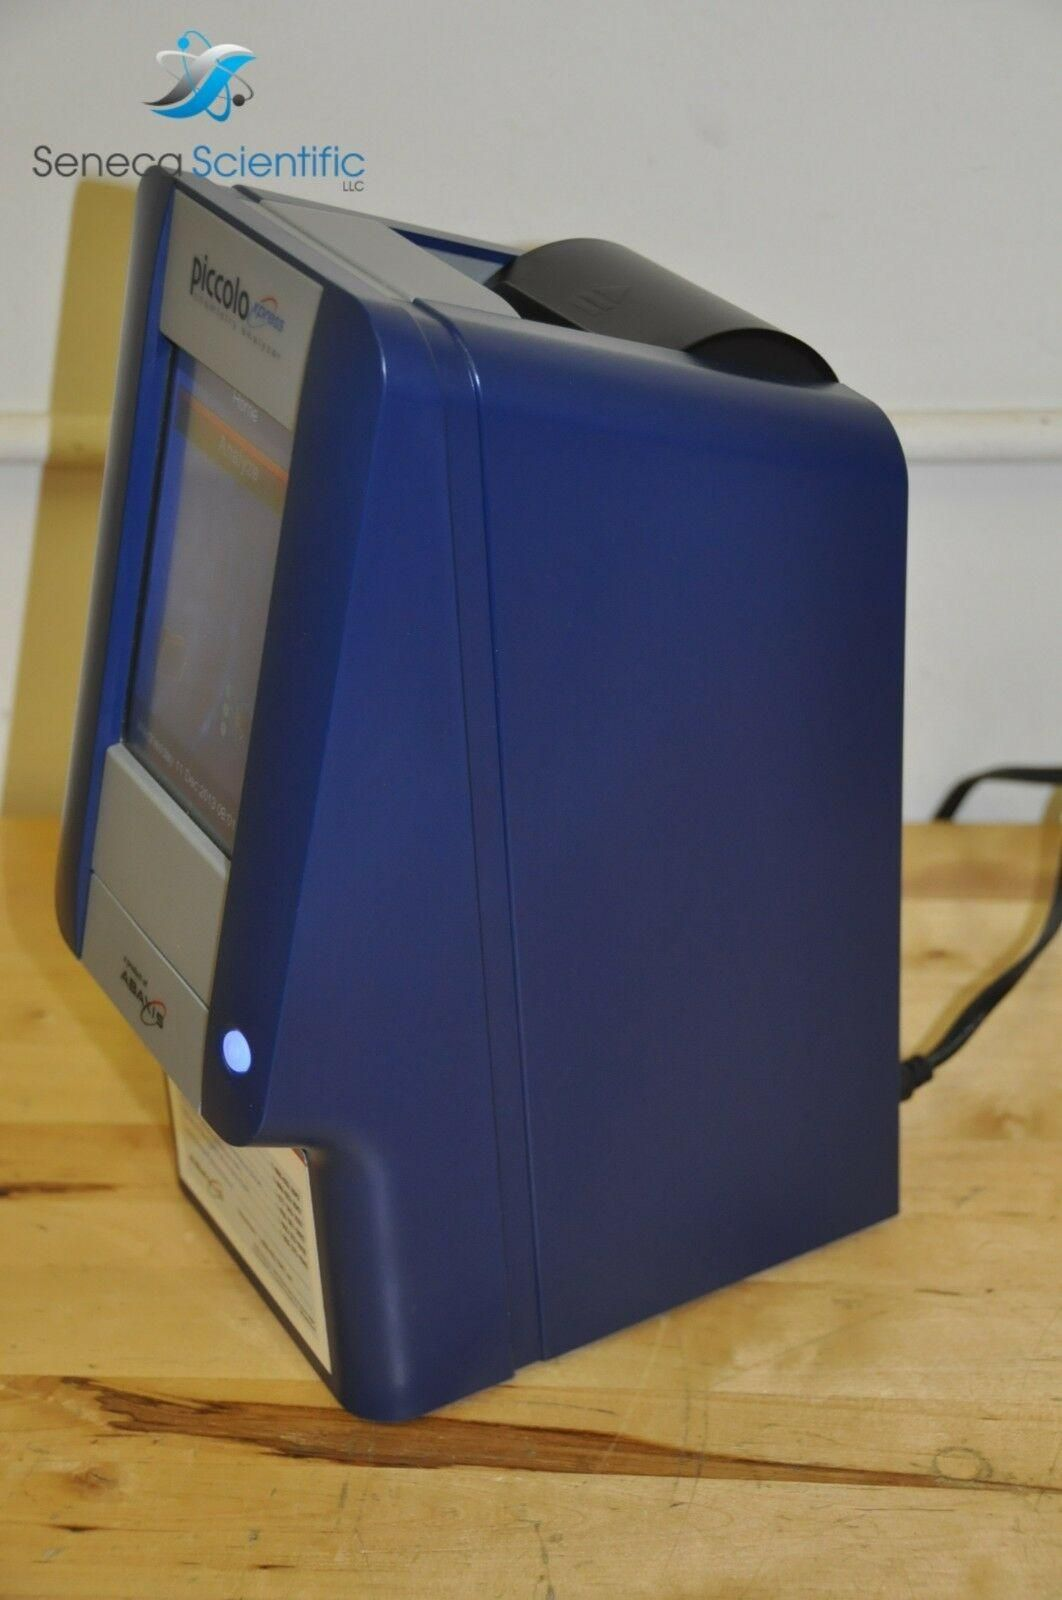 ABAXIS PICCOLO XPRESS CHEMISTRY BLOOD ANALYZER CLIA WAIVED PORTABLE